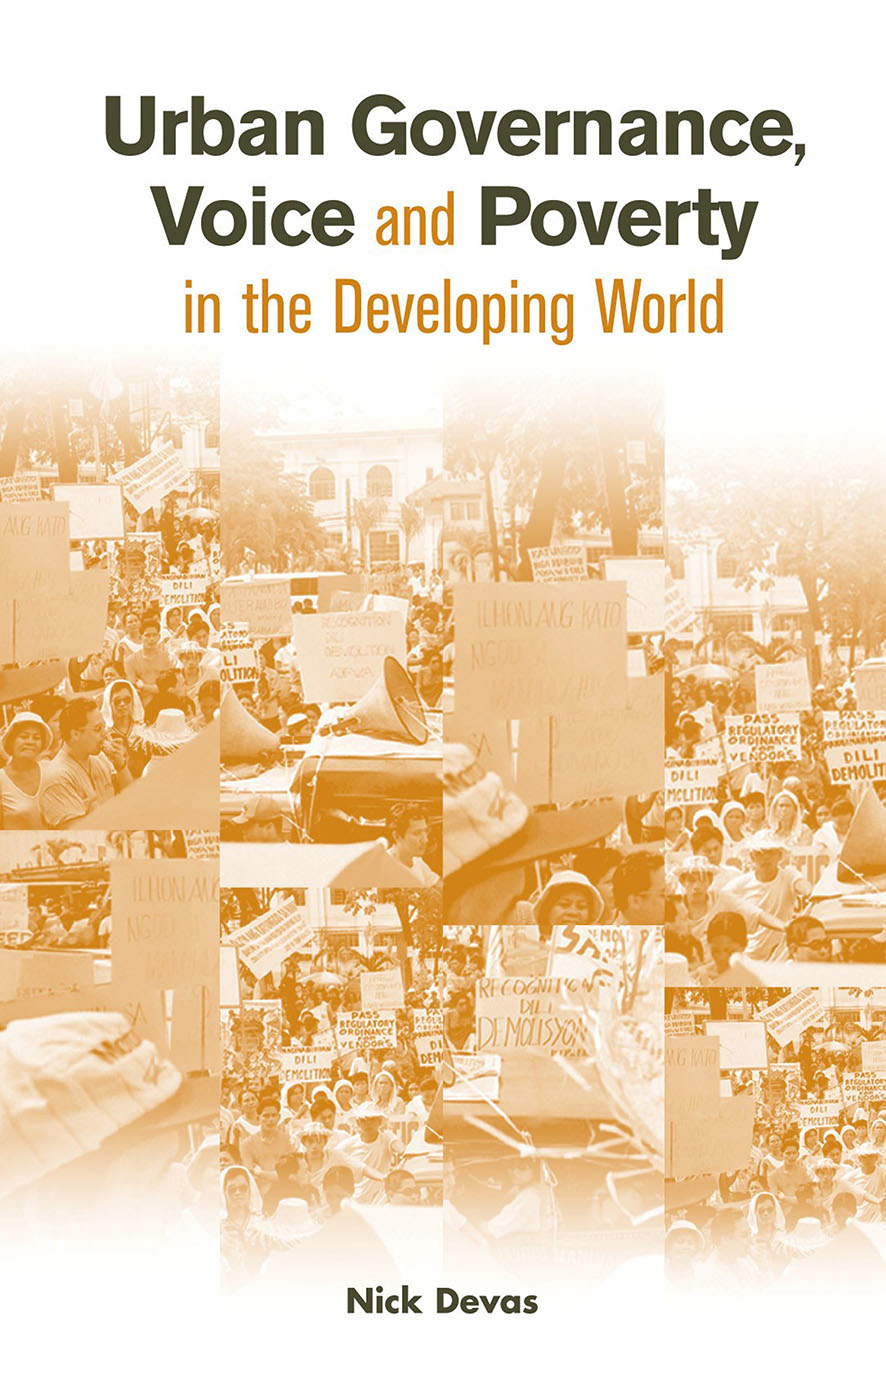 Urban Governance Voice and Poverty in the Developing World